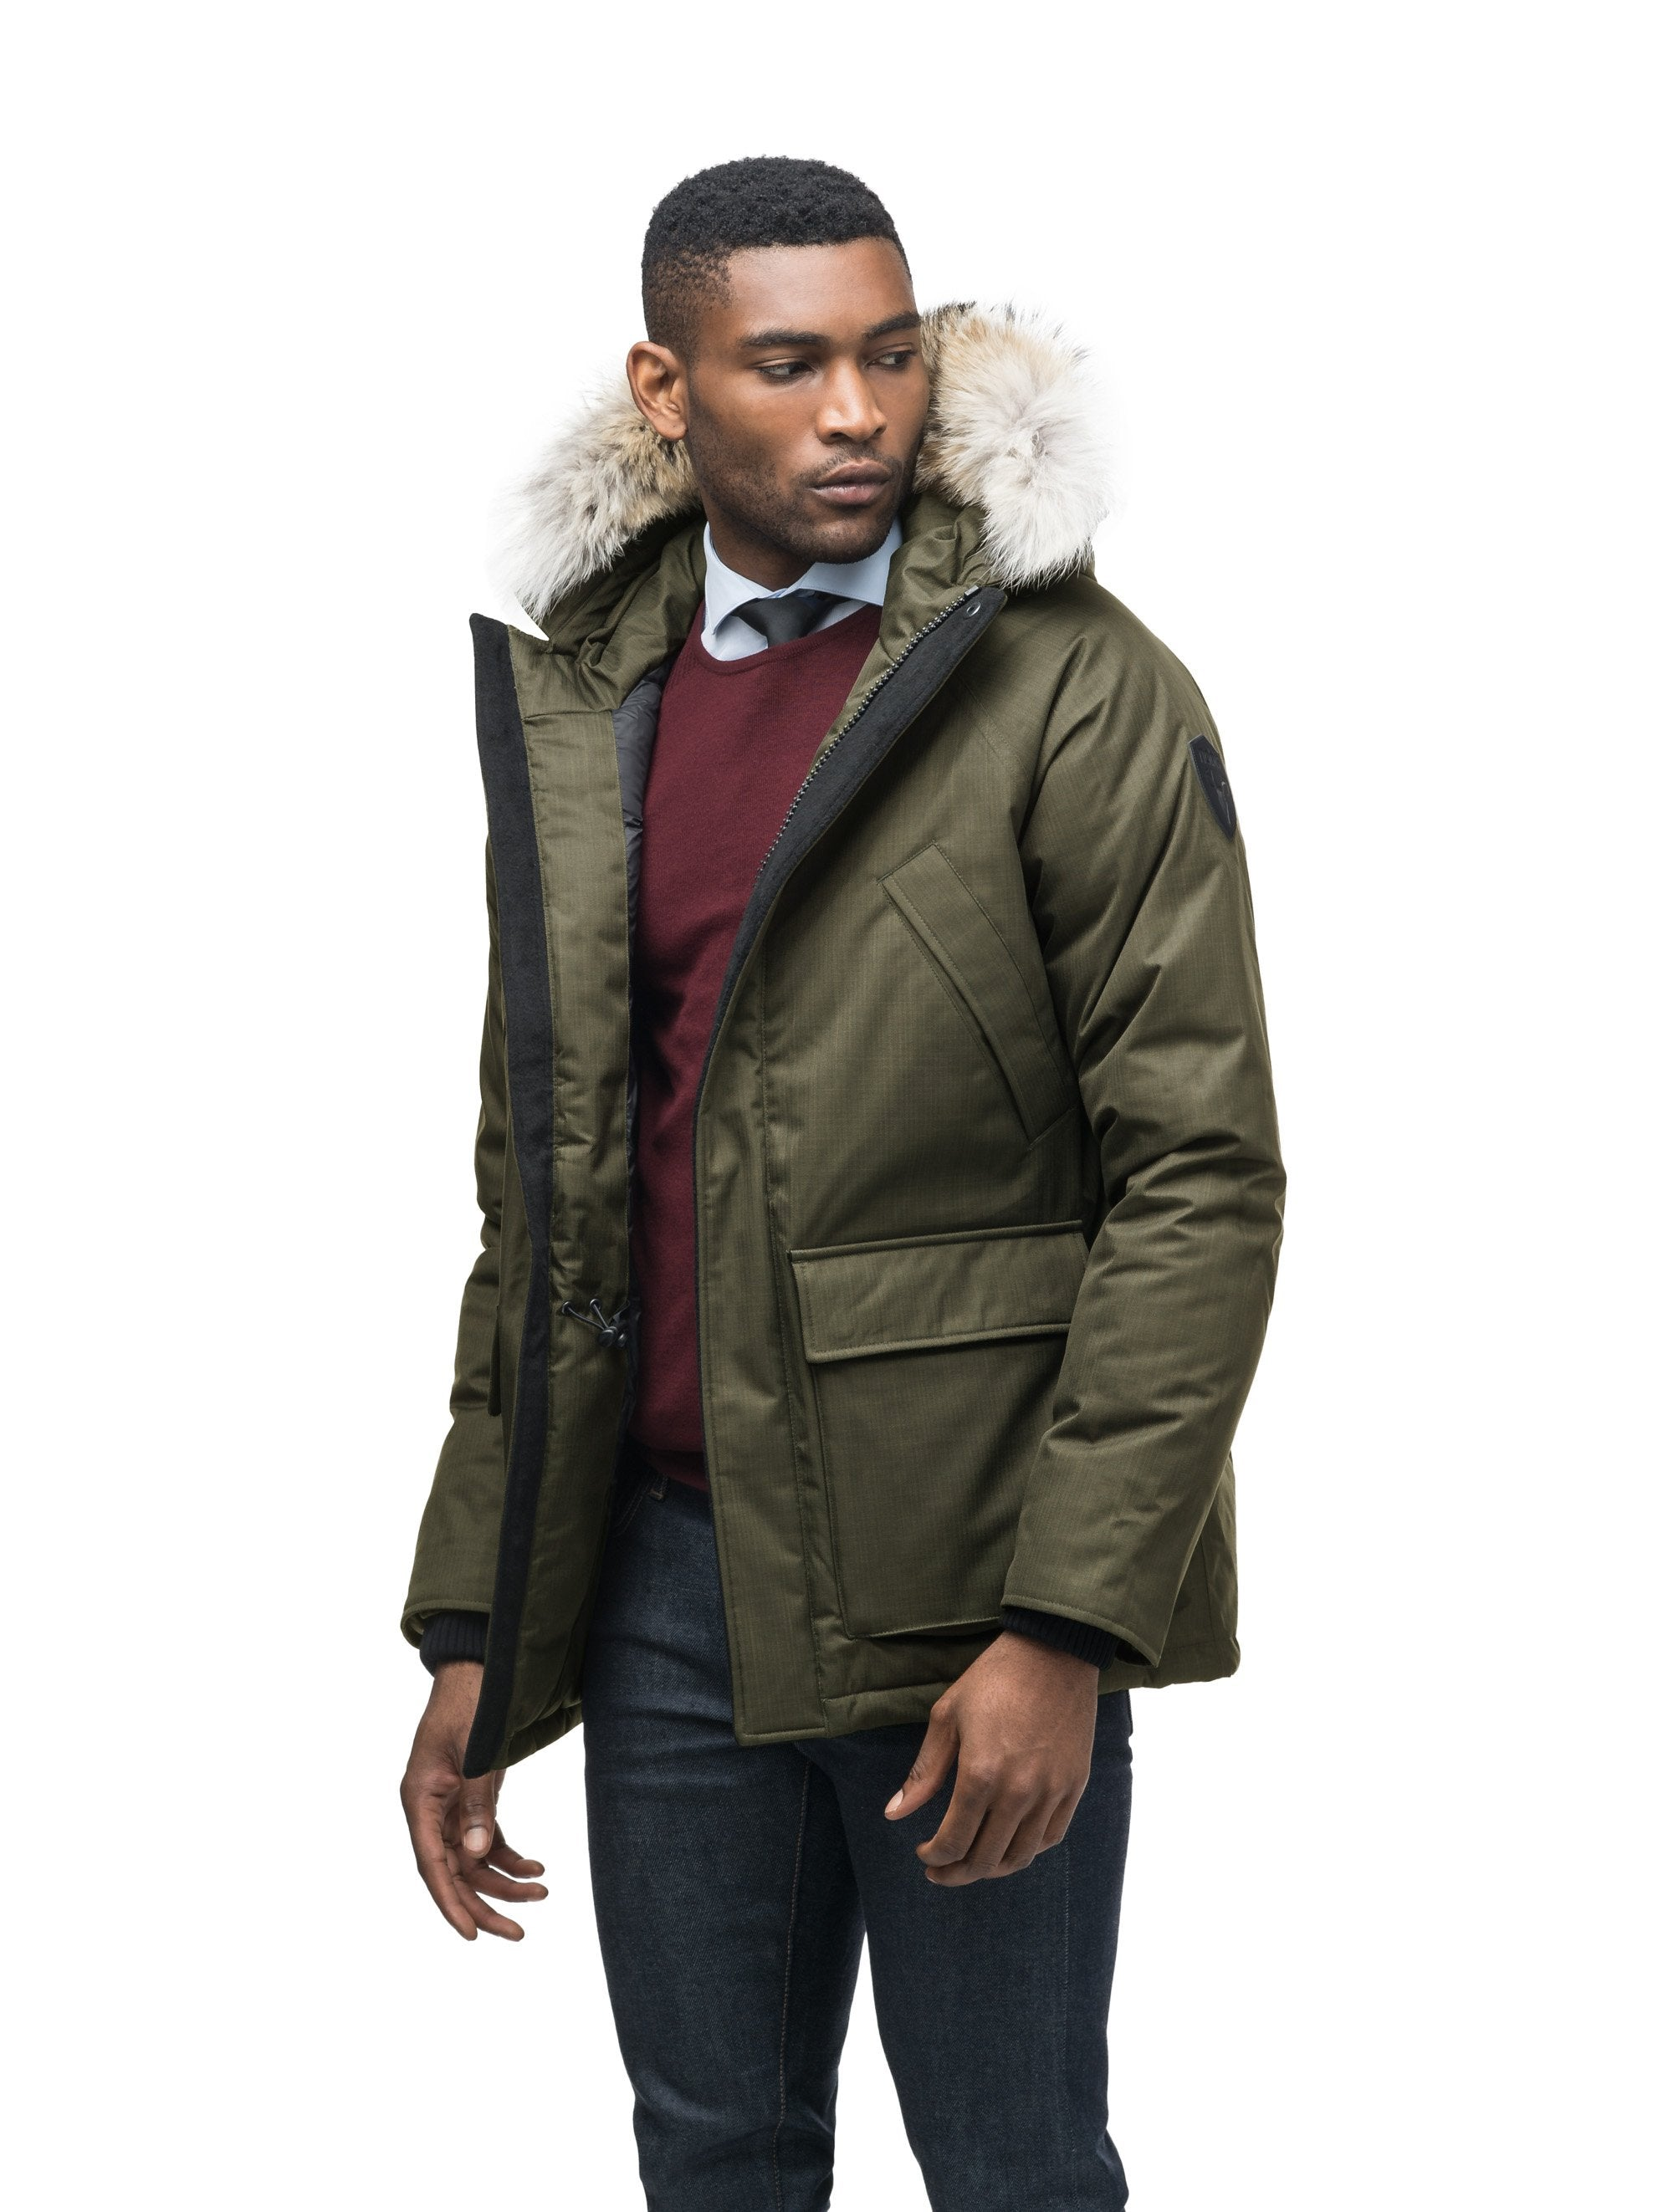 Men's waist length down filled jacket with two front pockets with magnetic closure and a removable fur trim on the hood in CH Fatigue | color